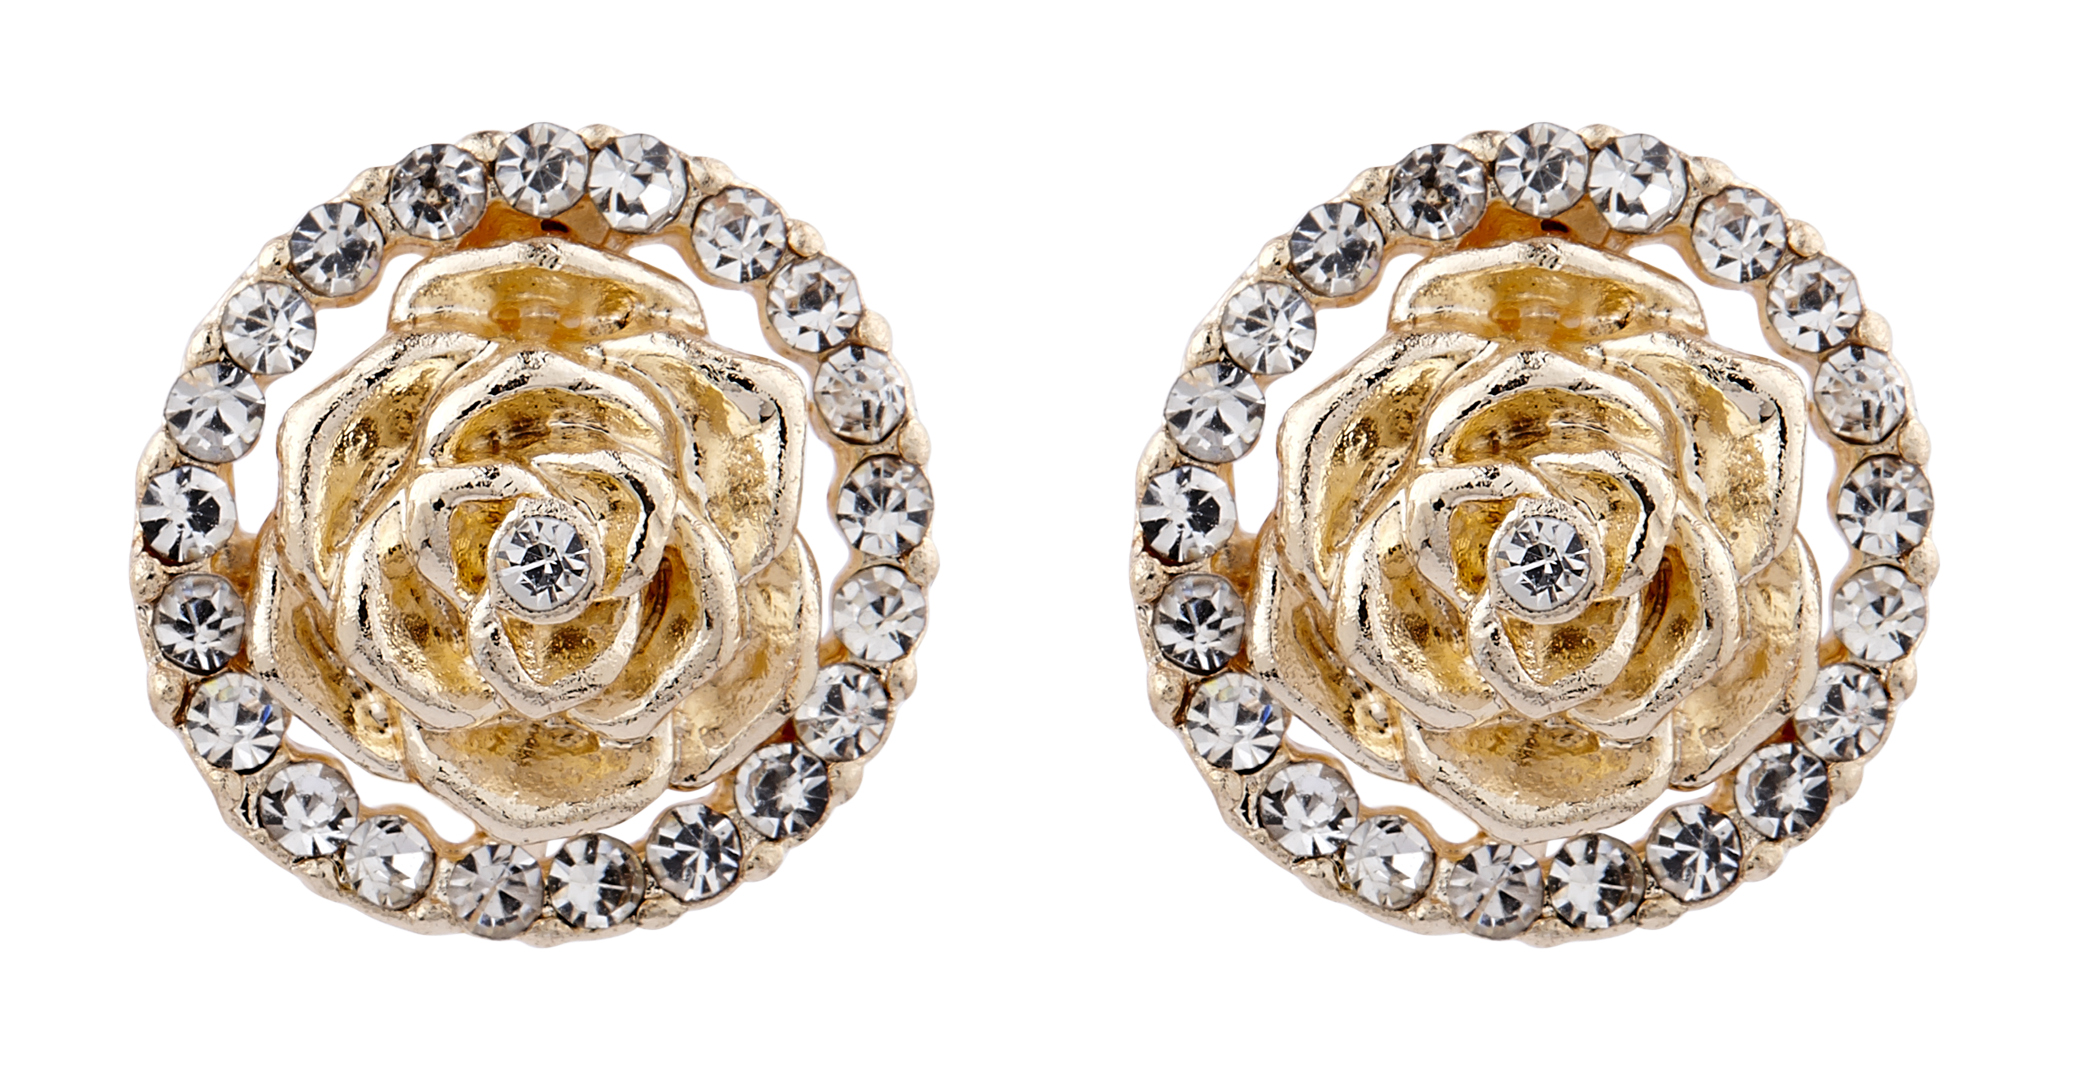 Clip On Earrings - Heidi - gold flower earring with clear rhinestone crystals